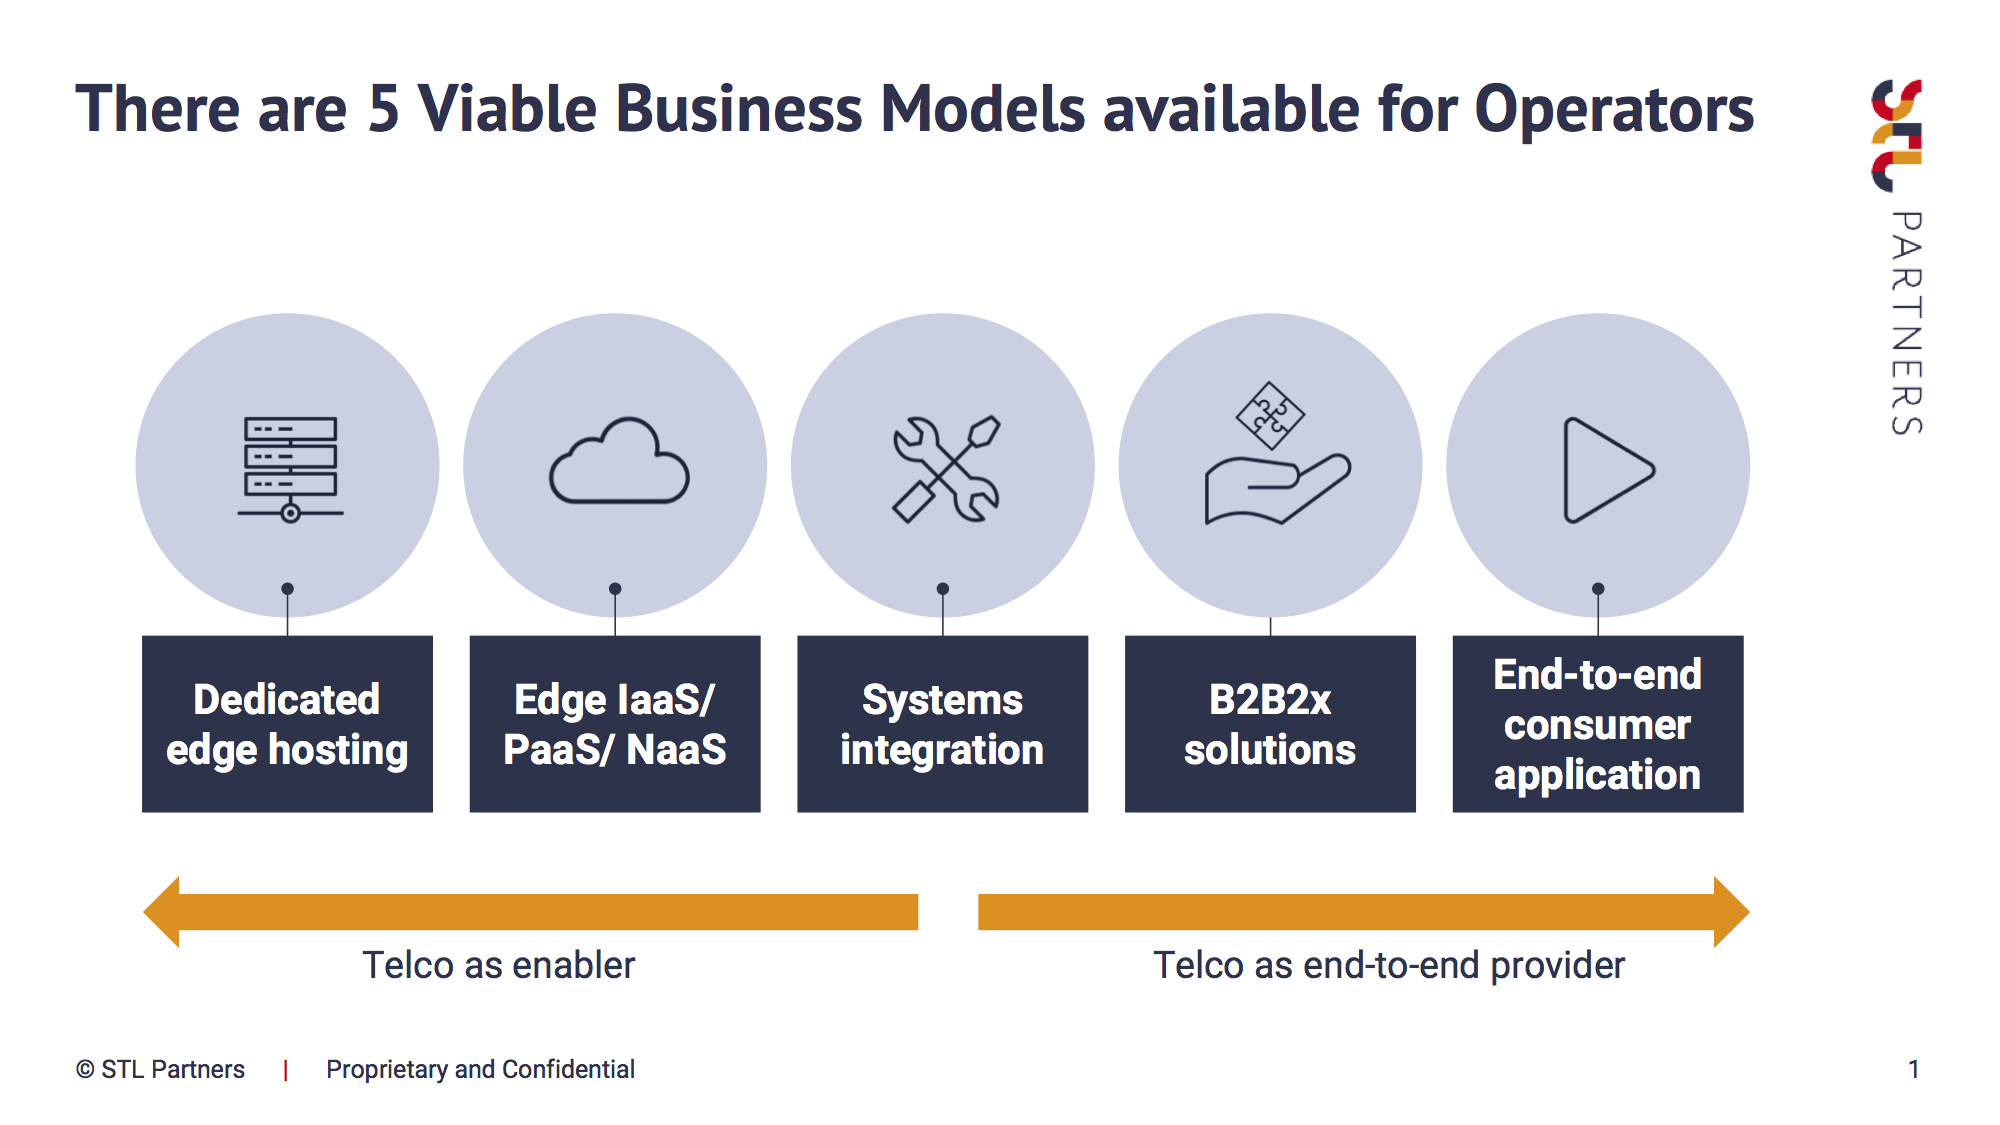 5 Viable Business Models available for Operators